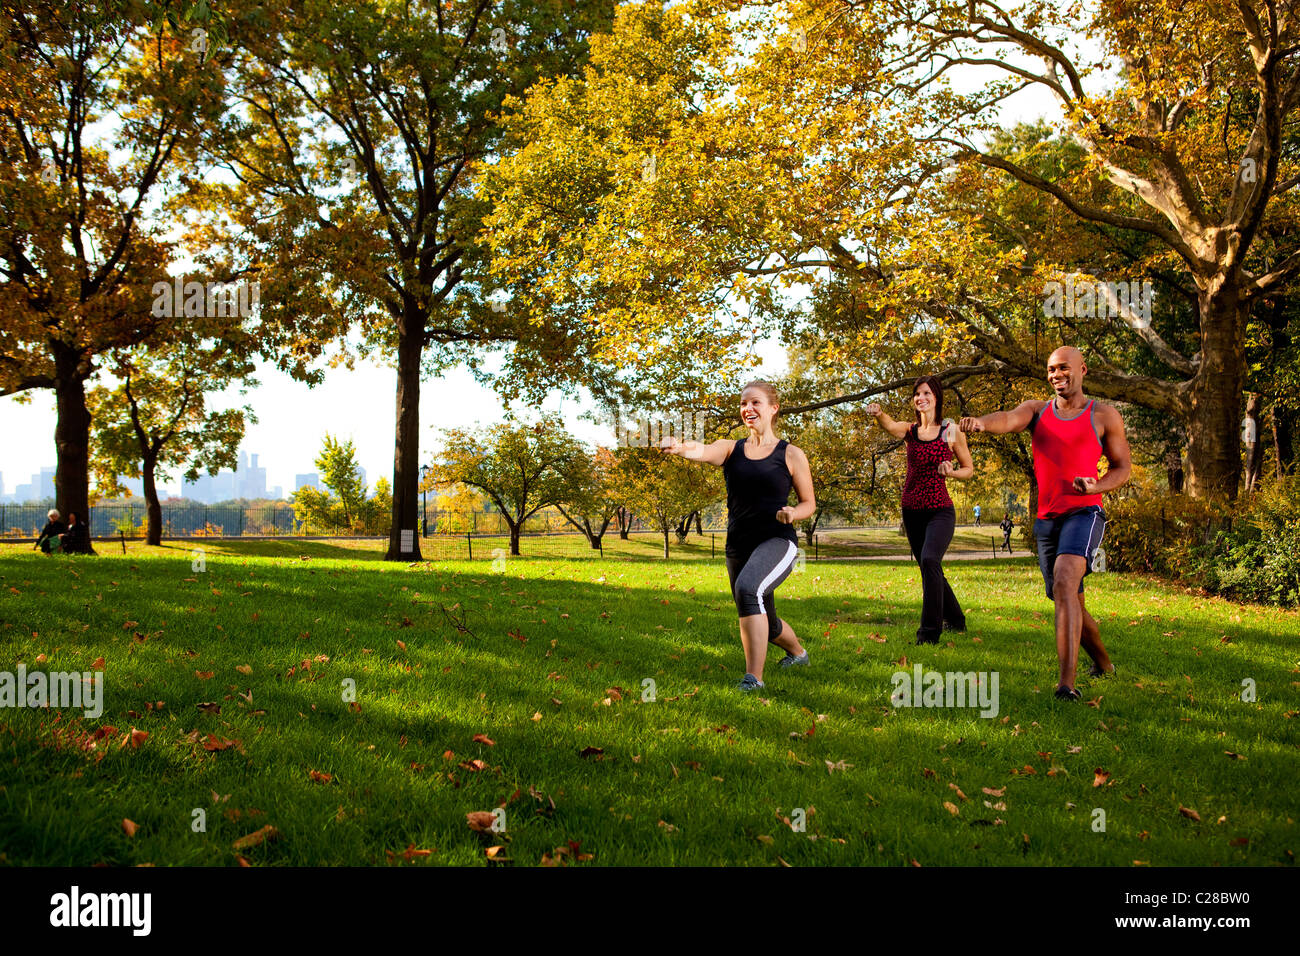 A group of young adults training martial arts in the park - Stock Image